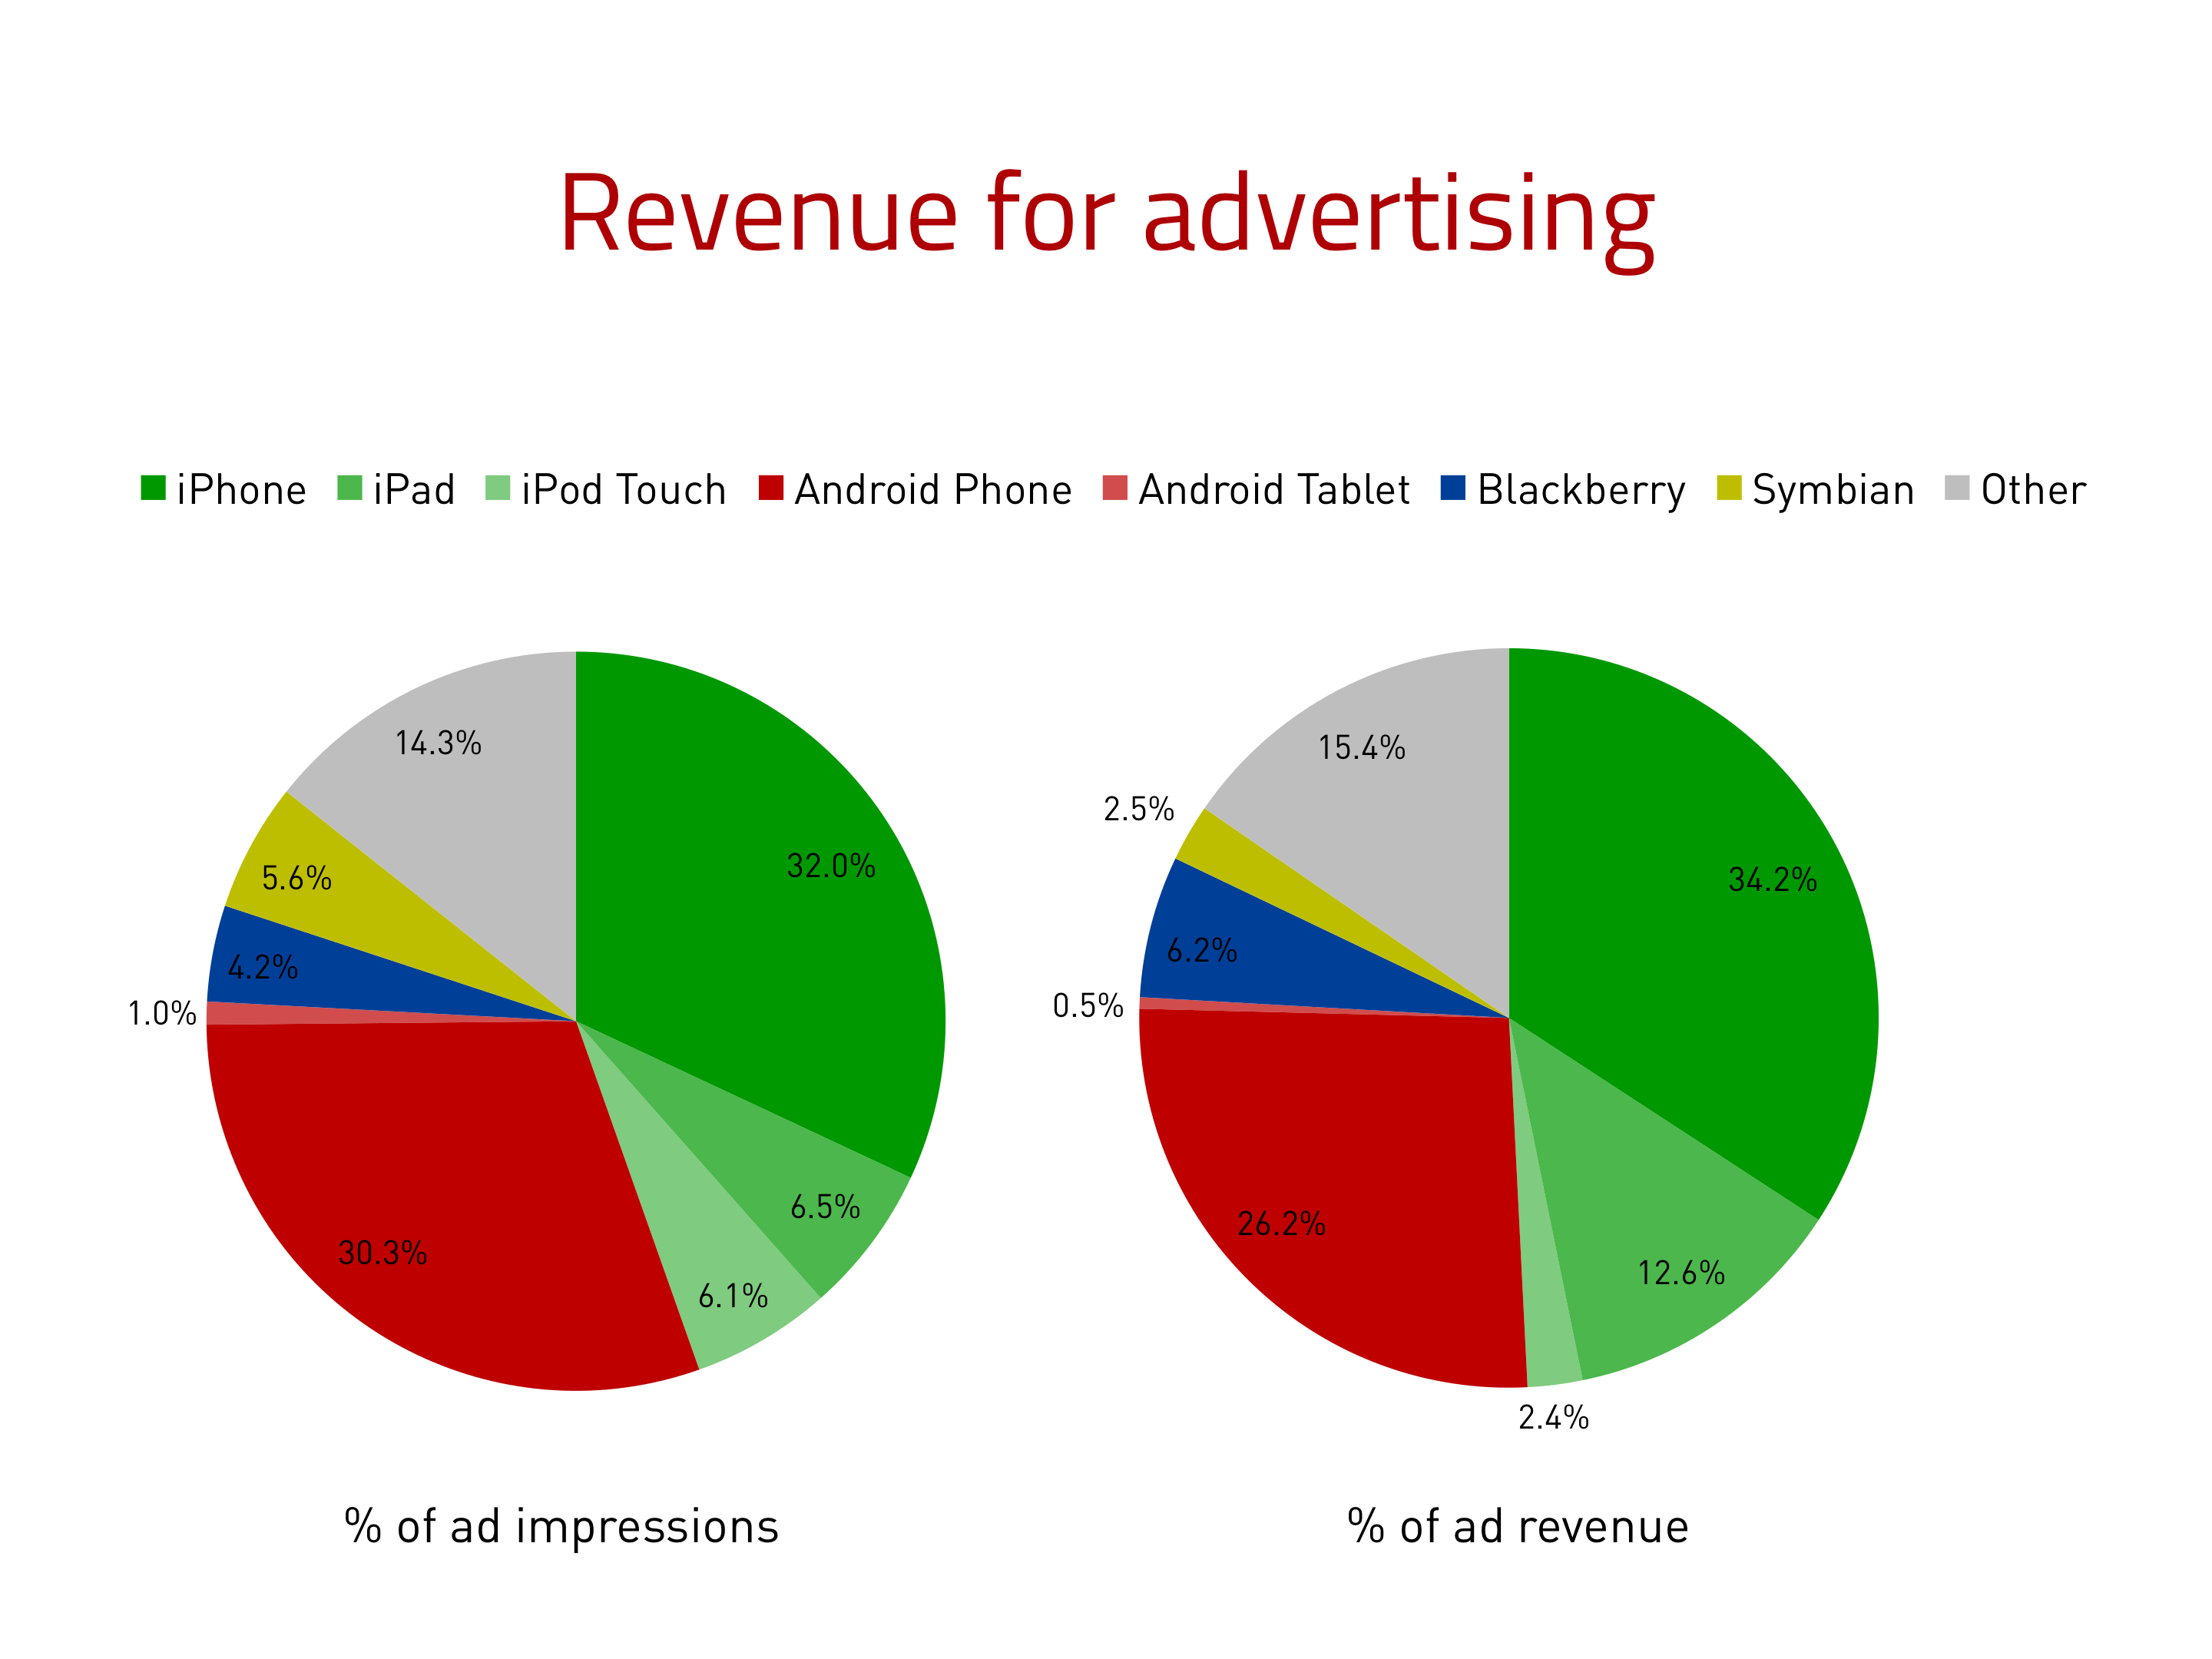 Revenue for advertising (ad impressions and ad revenue)